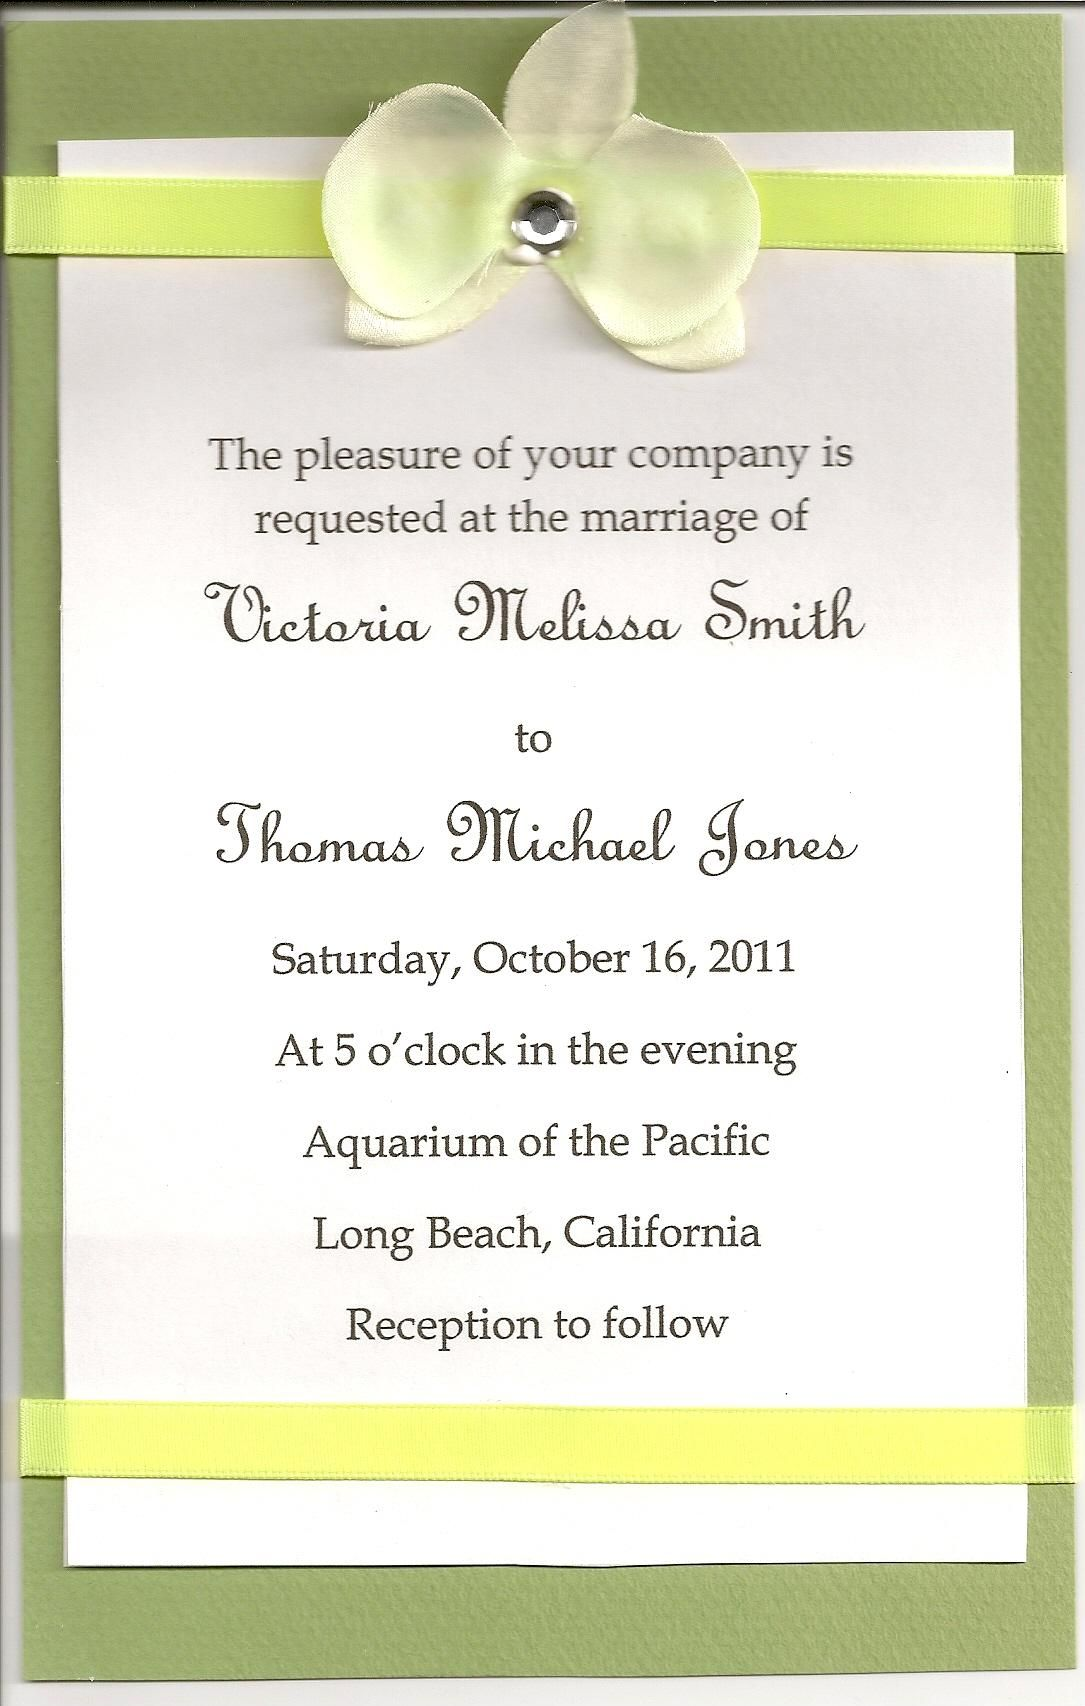 17 Best images about wedding invitations – Invitation Wedding Cards